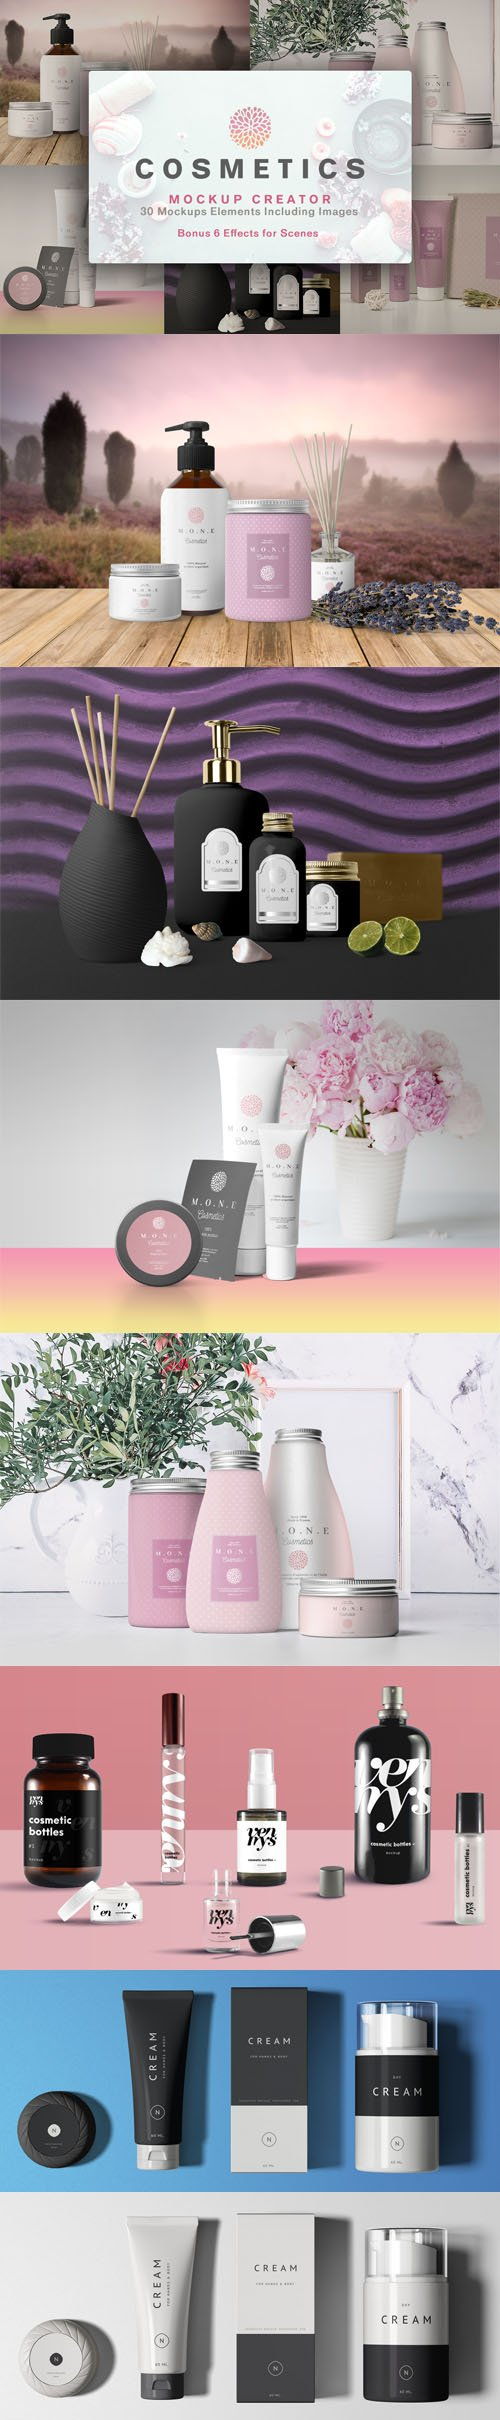 Essential Cosmetics Packaging PSD Mockups Collection